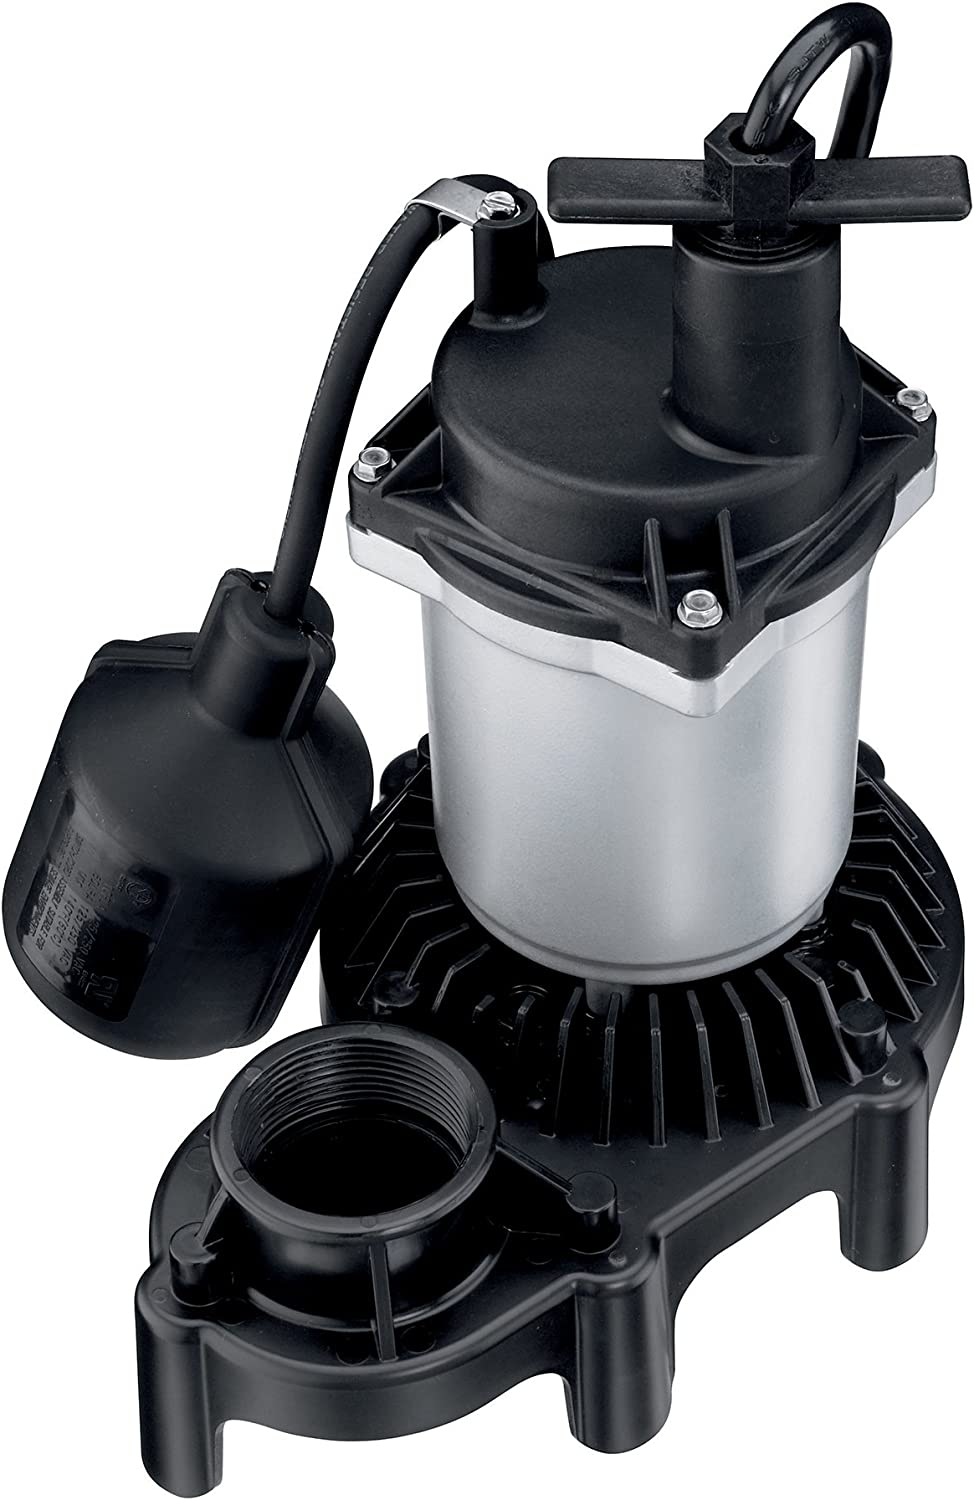 Flotec FPZS25T Submersible Sump Pump With Tethered float Switch, 3200 Gph, 1/4 Hp, 115 Vac, 15 A